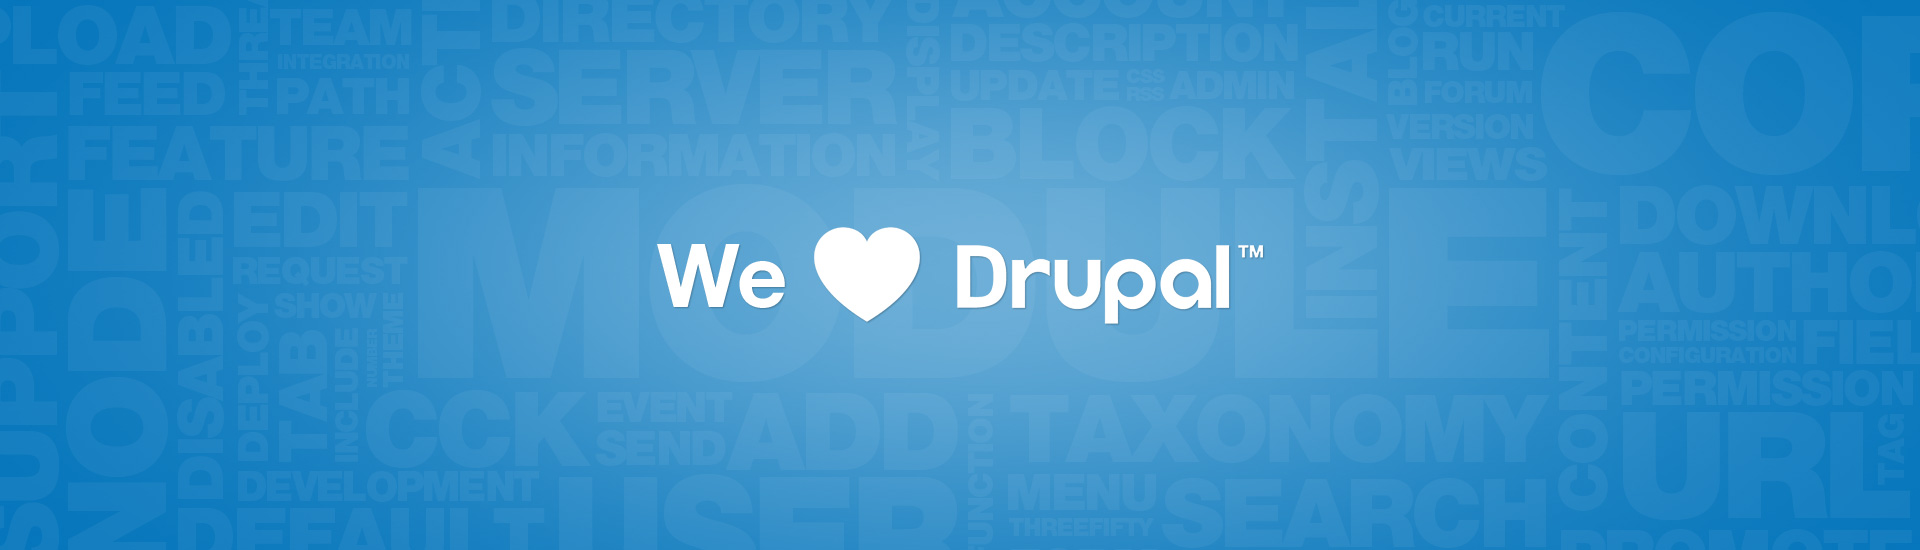 Toronto Ontario Drupal Services by Web Value Agency